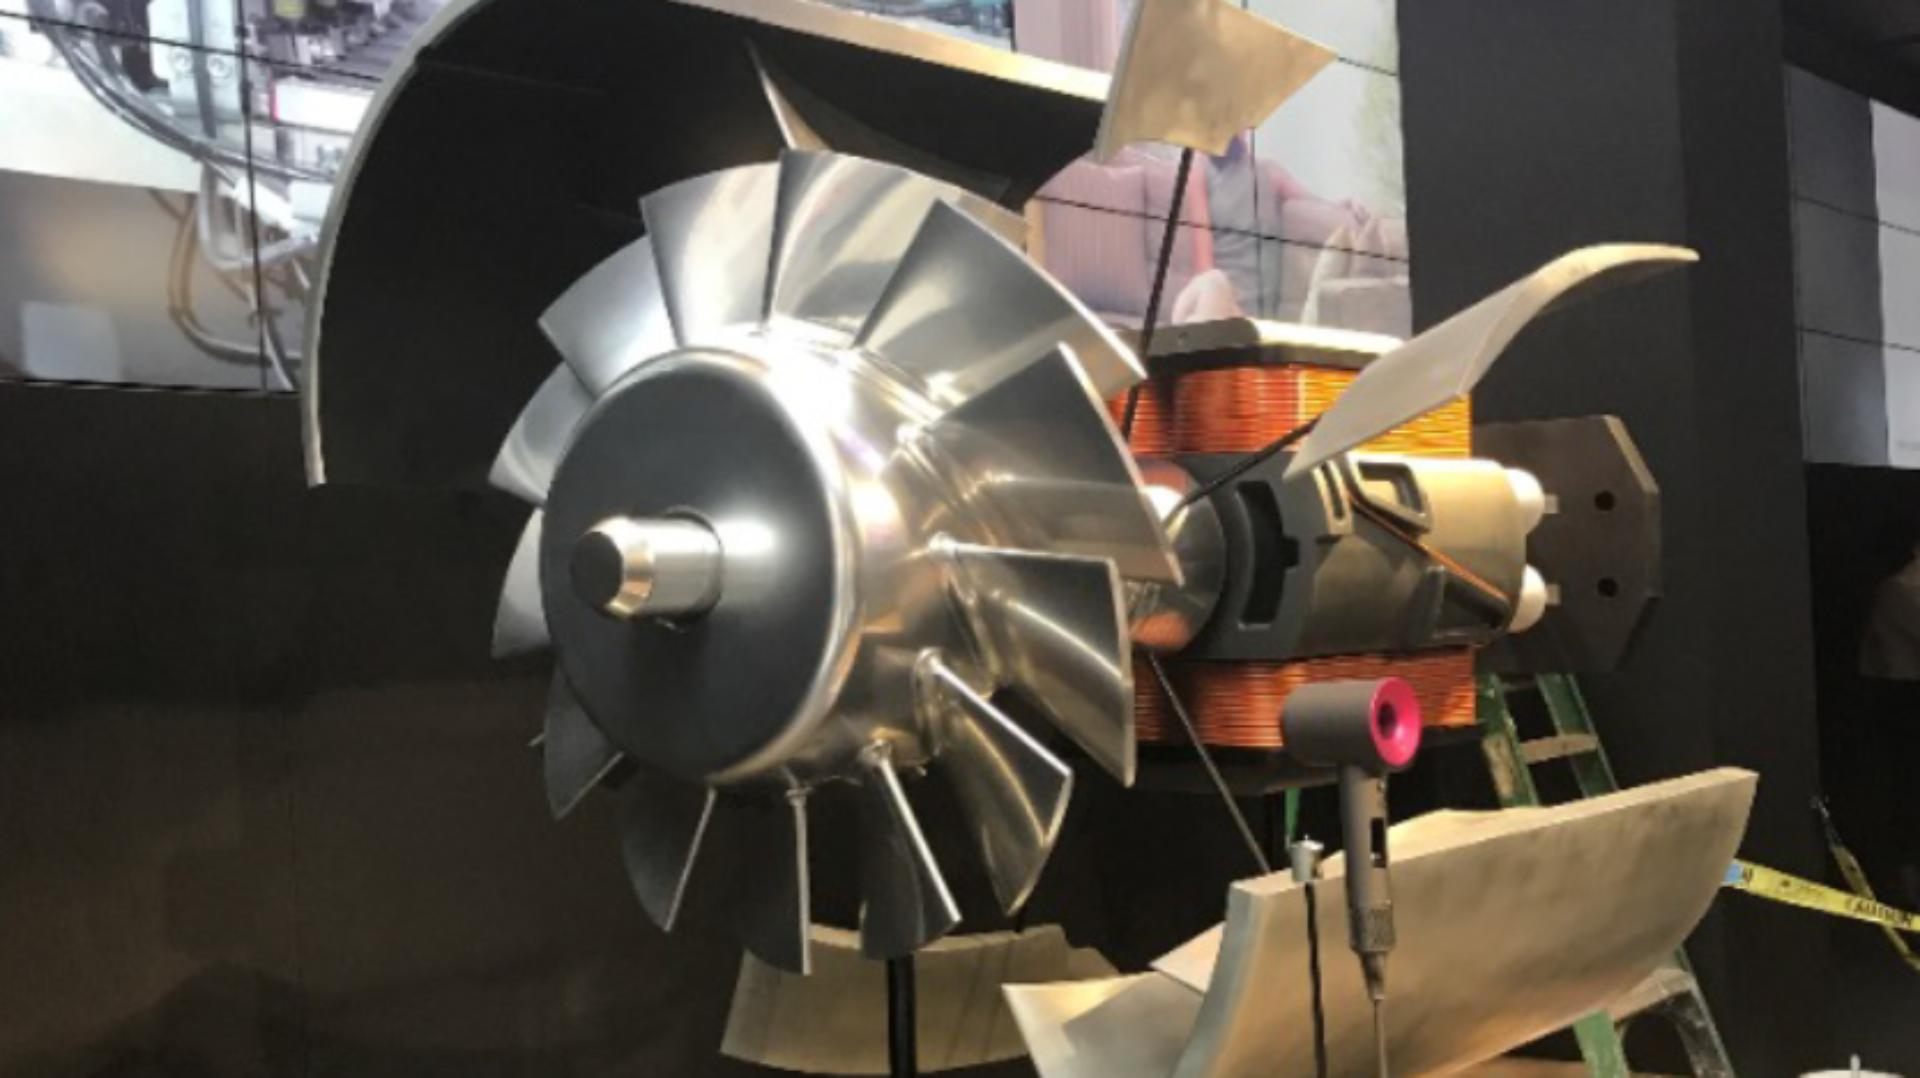 Scaled-up model of a Dyson Digital Motor